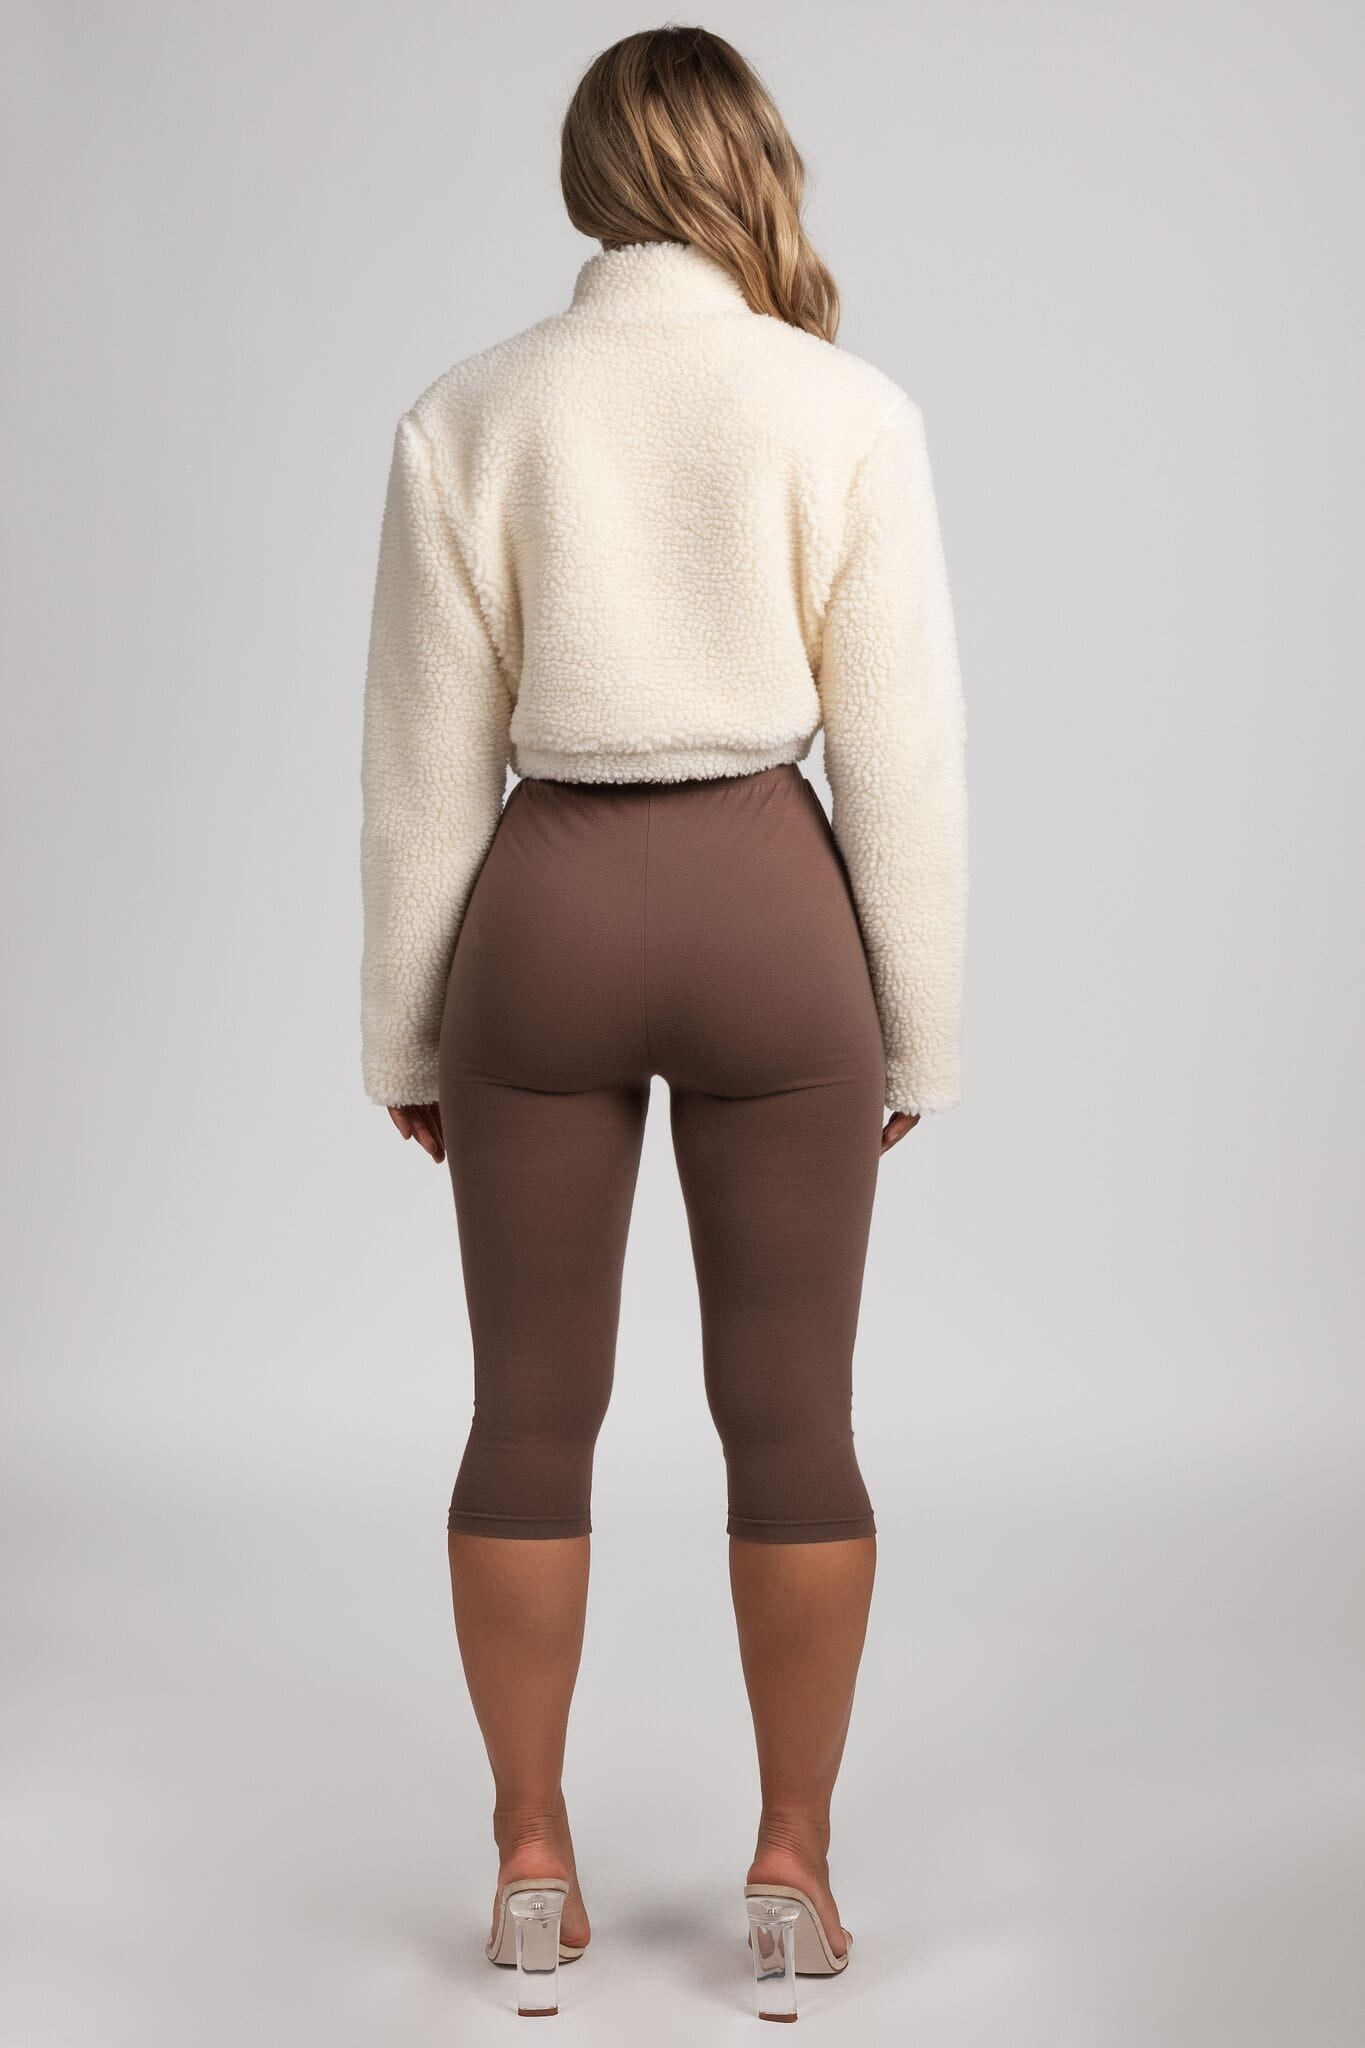 ad7ab92dcb Heather Cropped Leggings - Chocolate - MESHKI